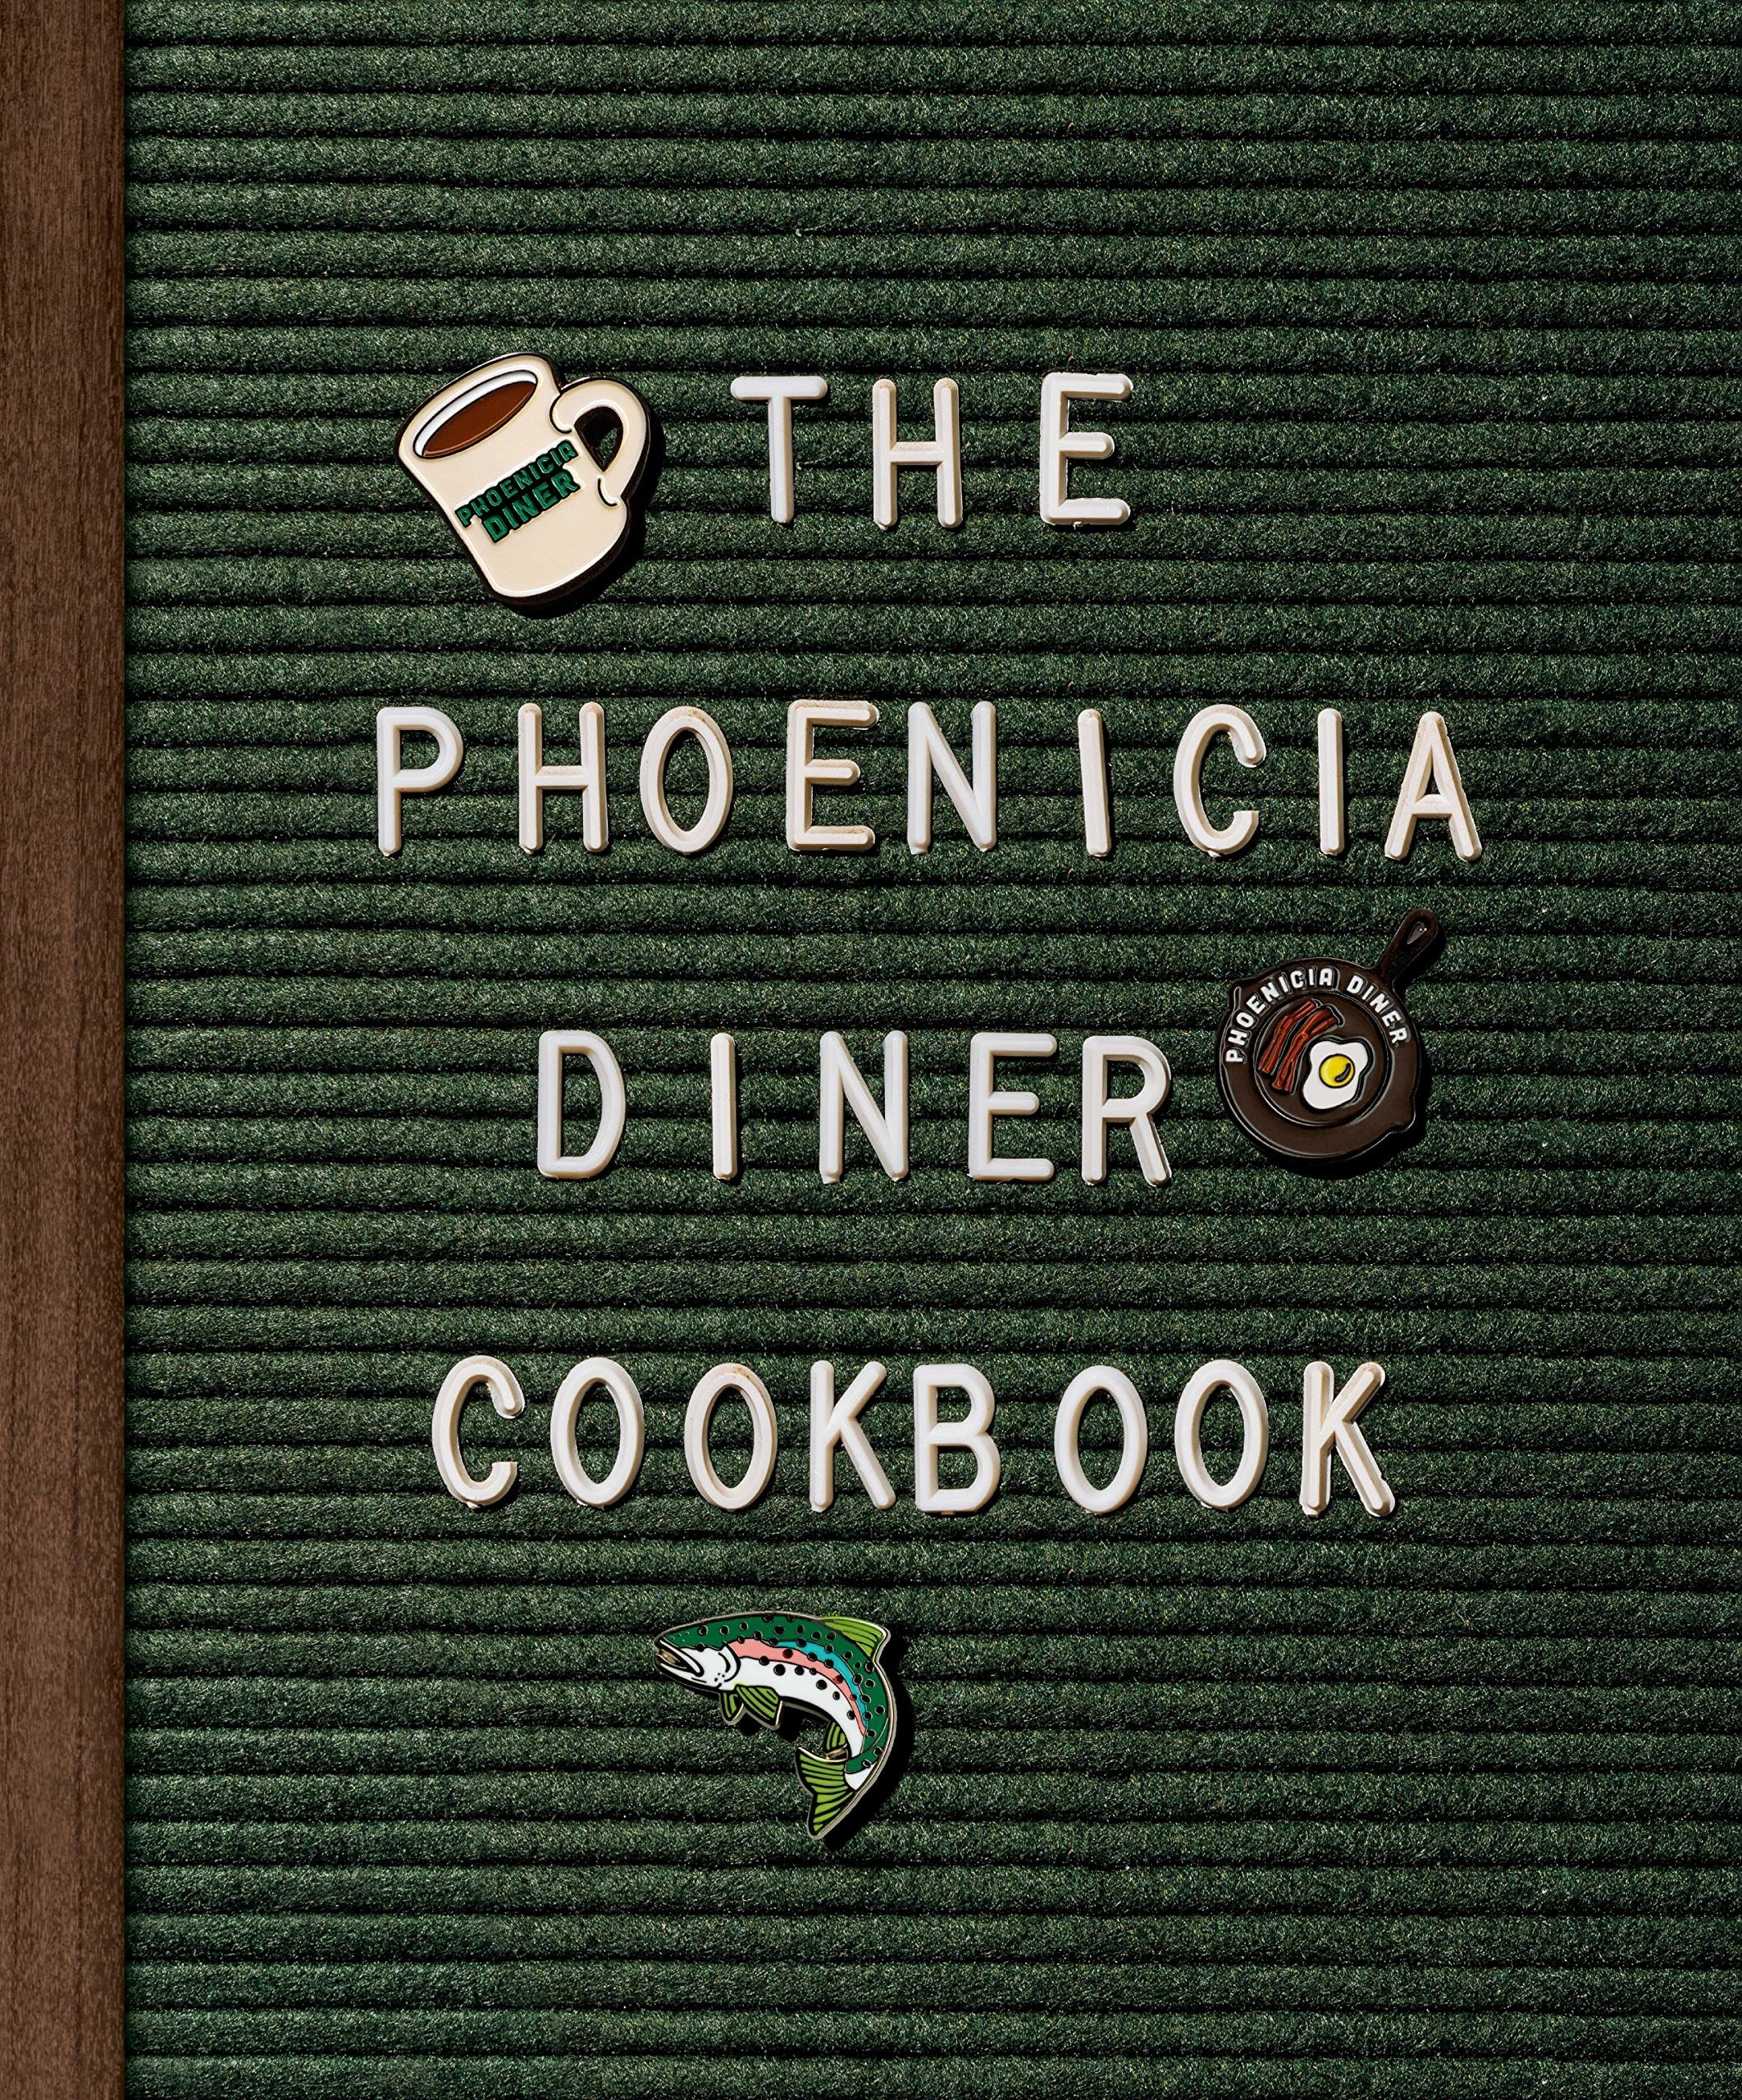 The cover of the The Phoenicia Diner Cookbook